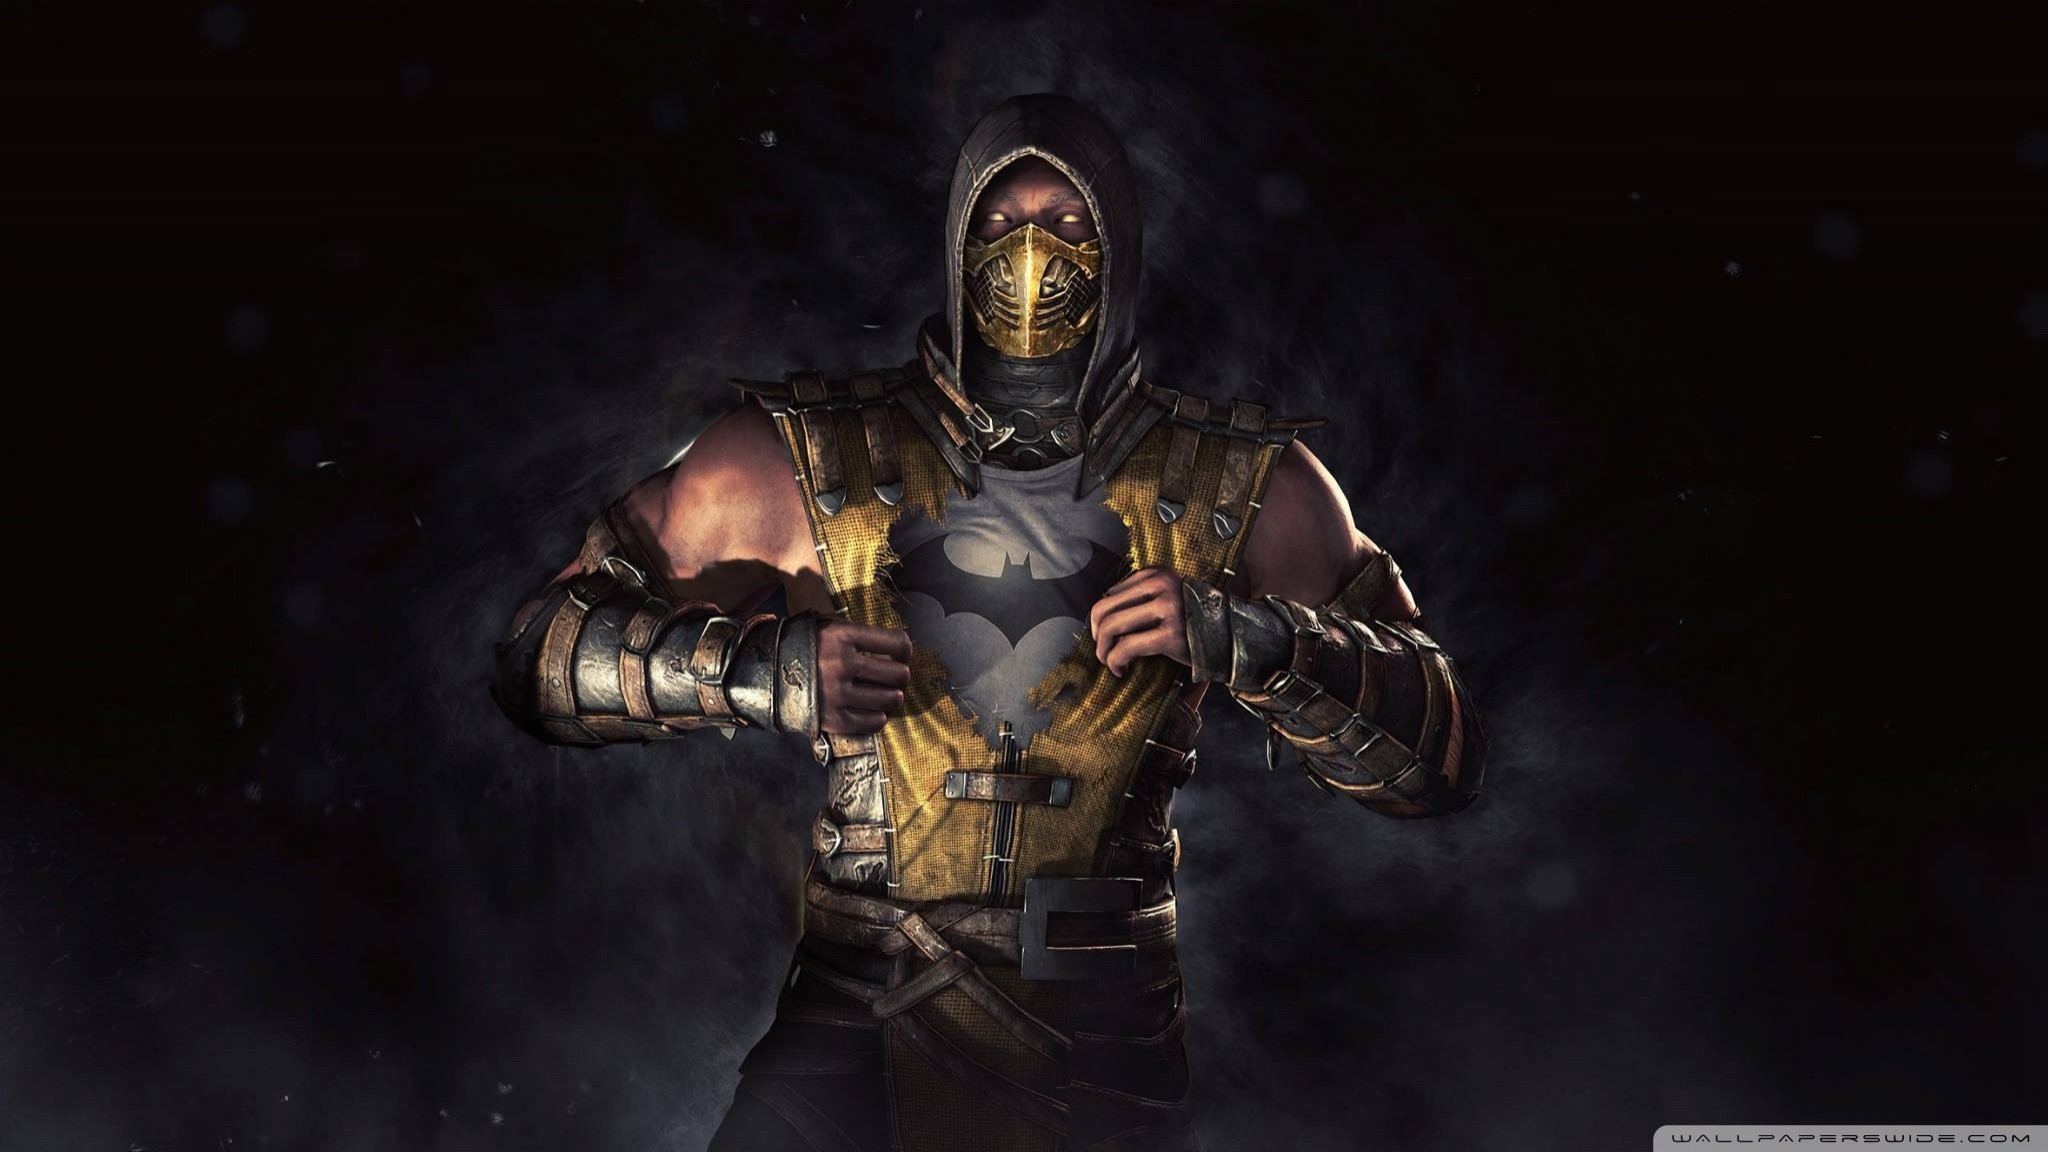 Mortal Kombat X Scorpio 3d Cool Video Games Wallpapers: Mortal Kombat Scorpion Wallpapers ·① WallpaperTag